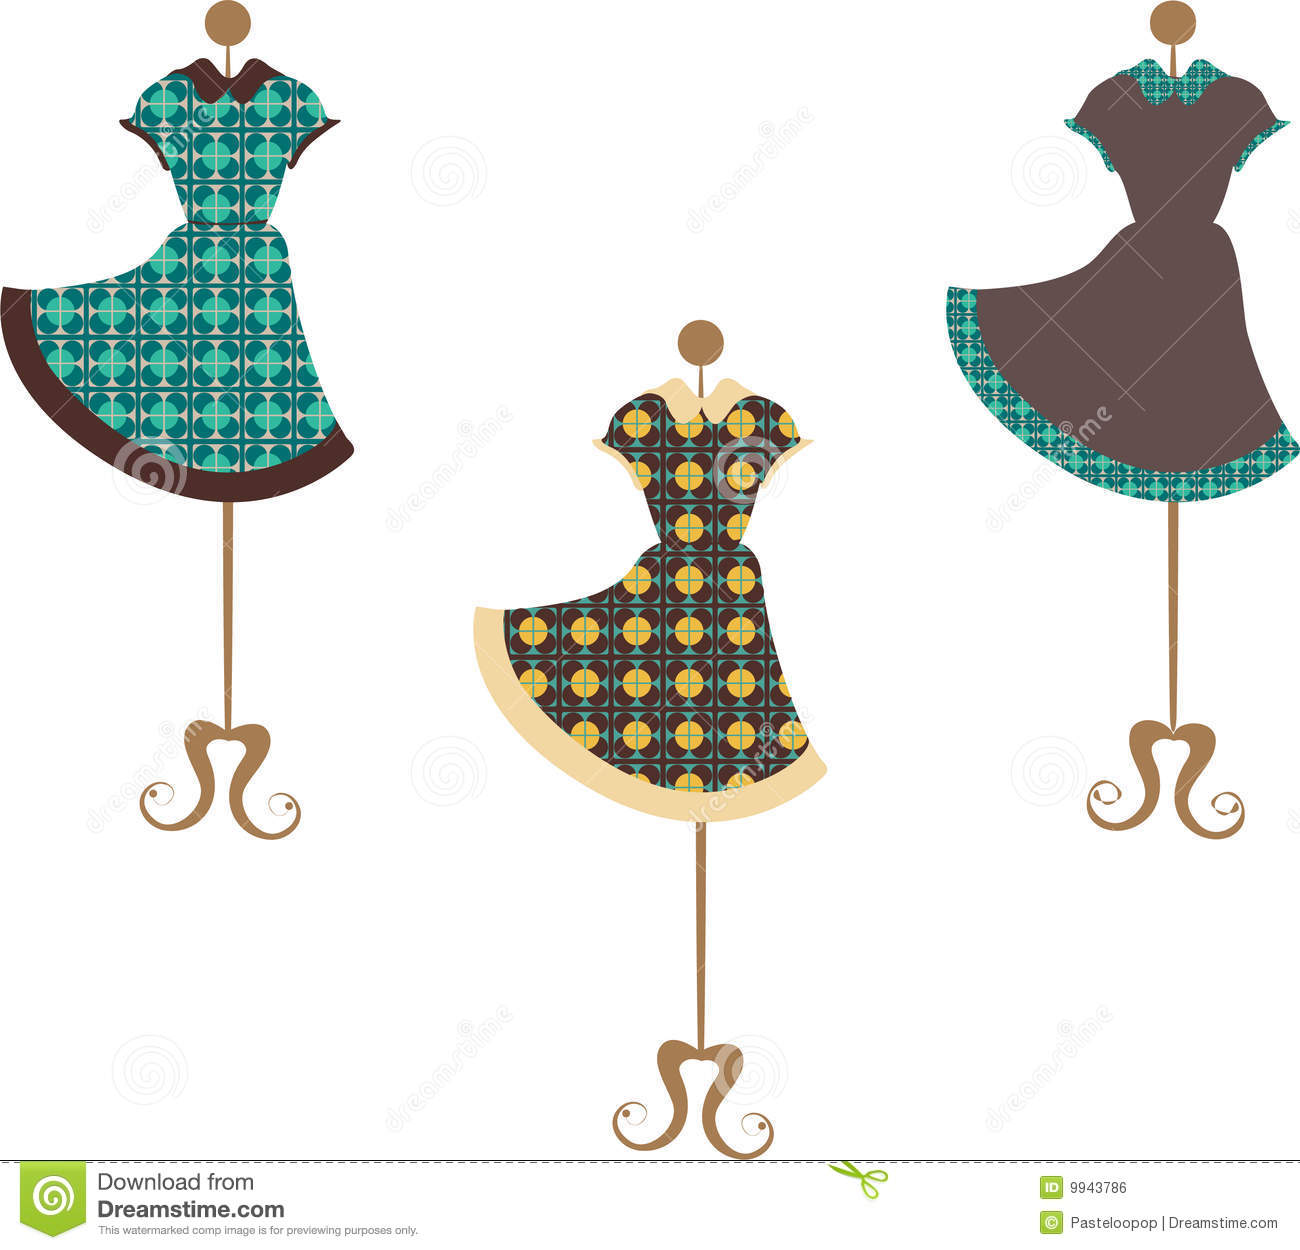 Trendy vintage dresses which are patterned with flowers each standing